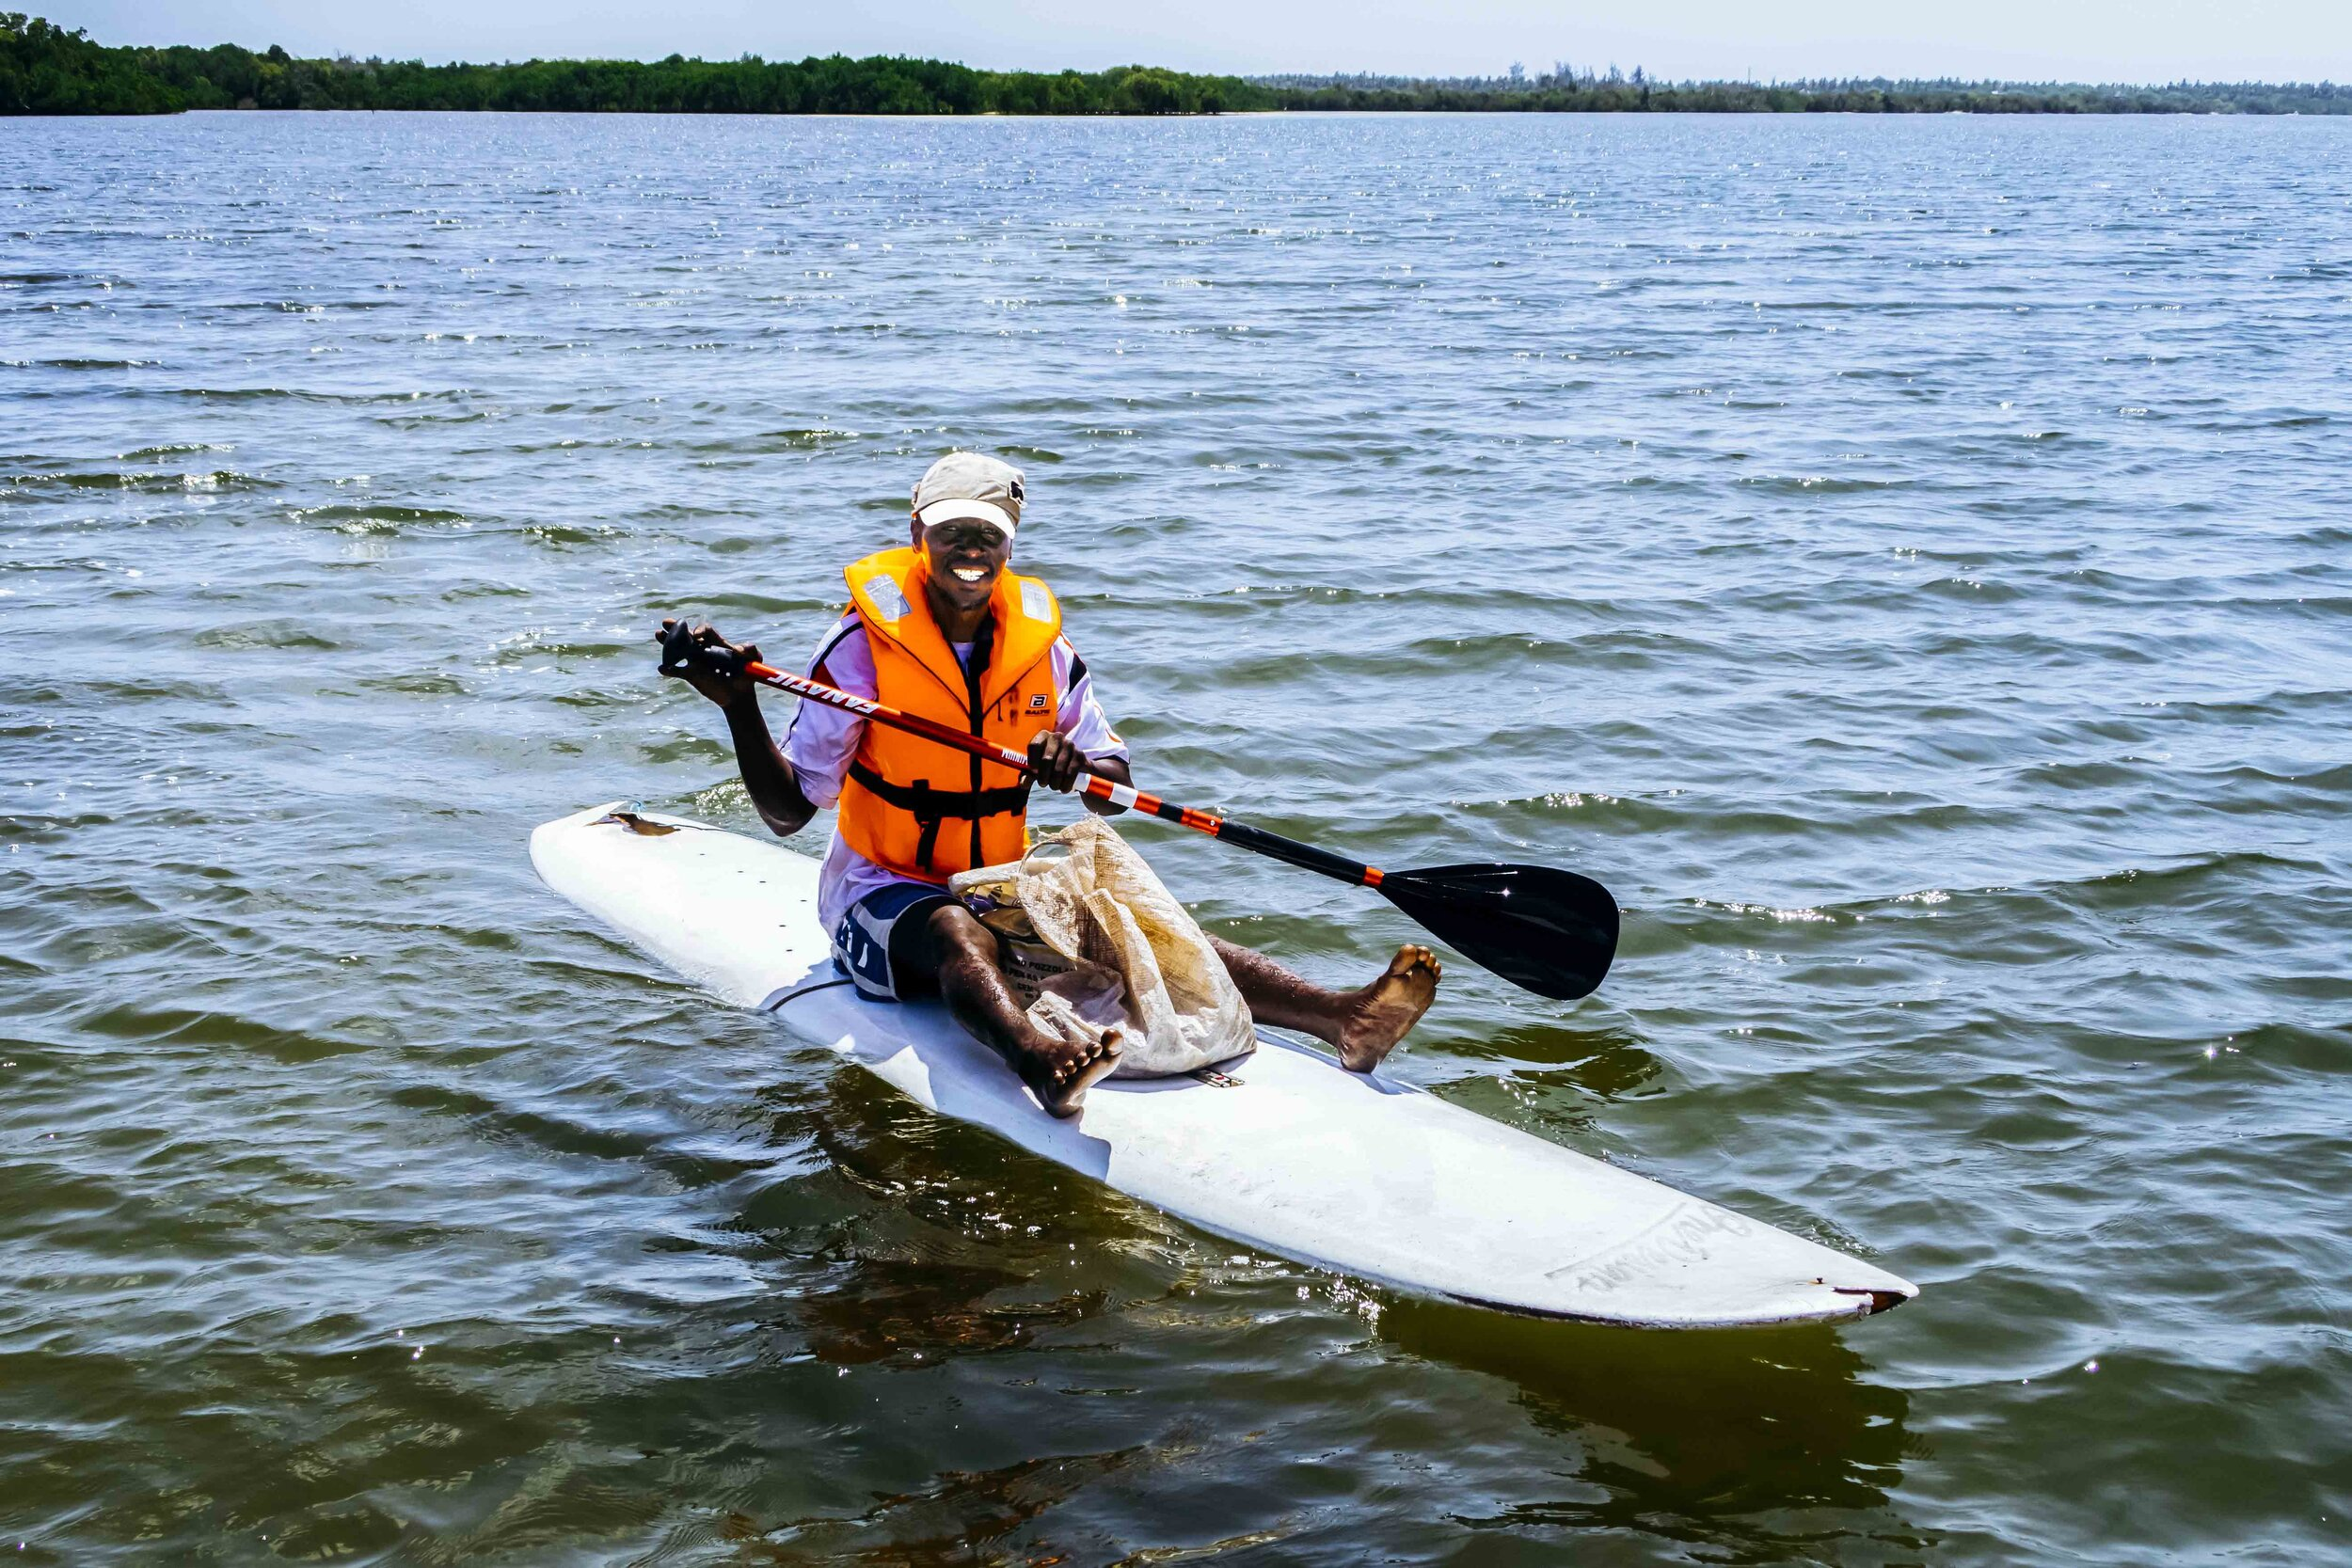 A fisherman in Mida Creek with equipment supplied by Treehouse / Paddle-Bank